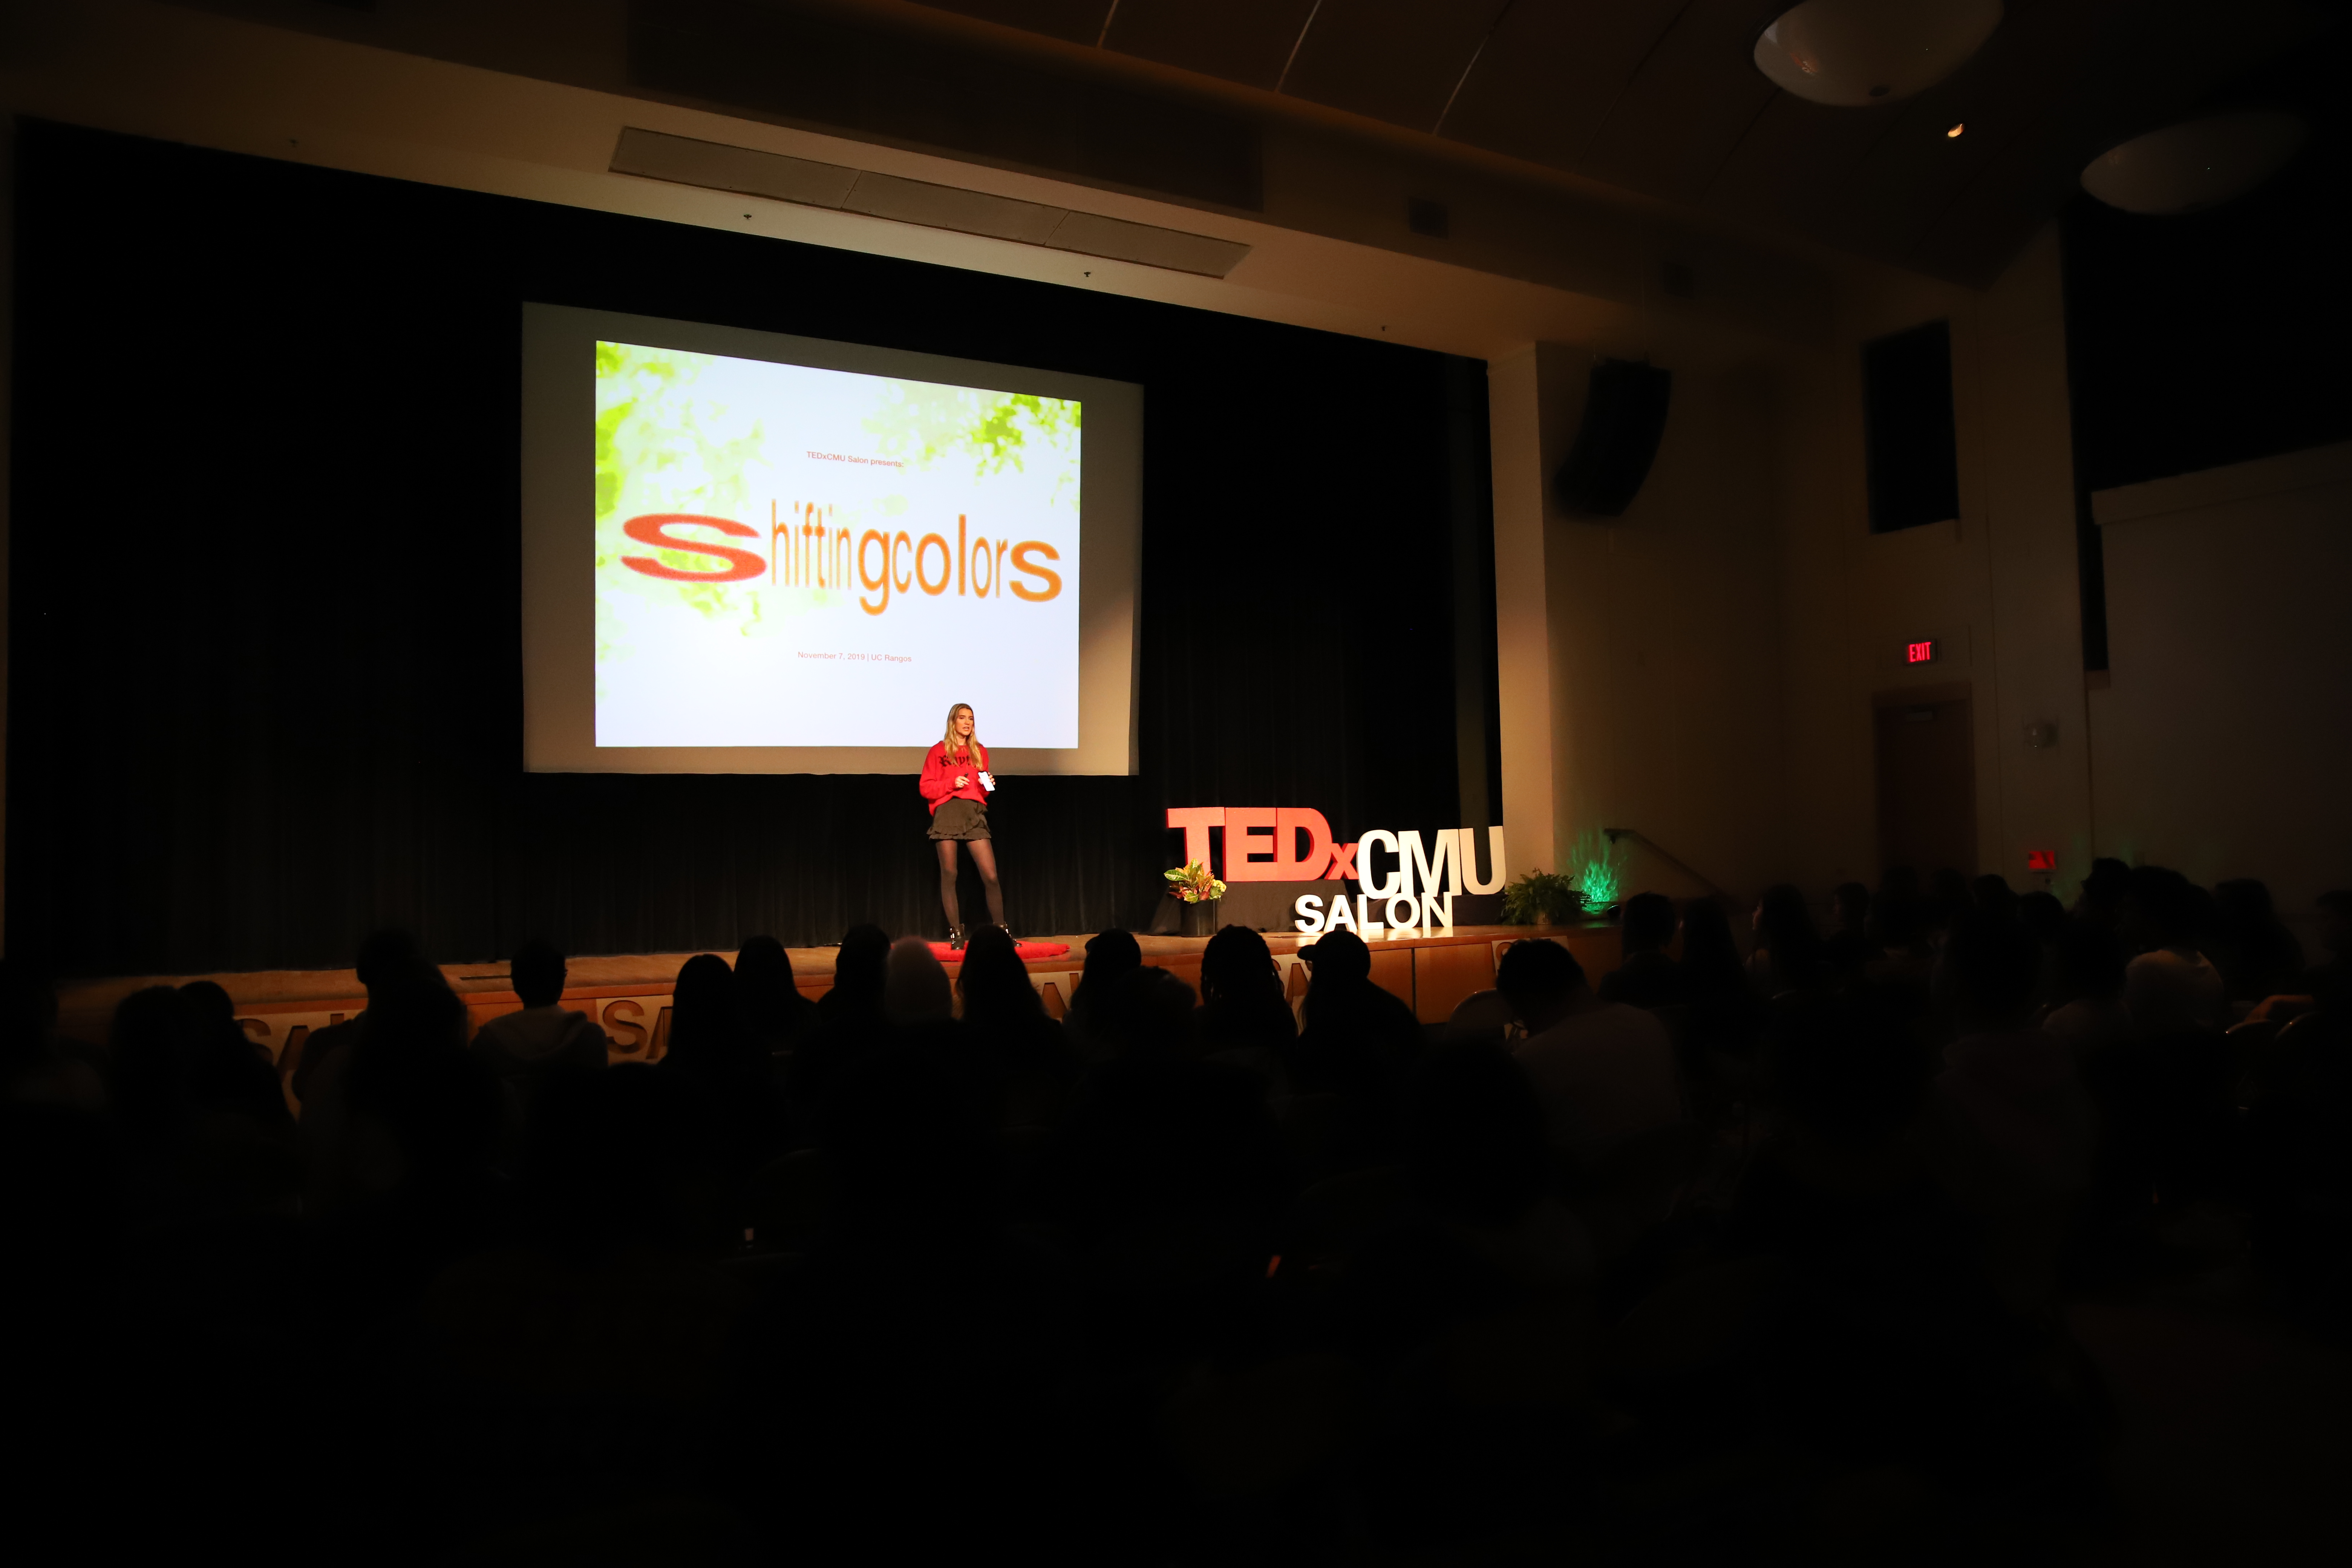 Alona Beloussova, one of the main organizers of TEDxCMU's Salon event, introduces this year's theme. It was the first year of the event, which presents student speakers. (credit: Courtesy of Haozhe Zhang, TEDxCMU)